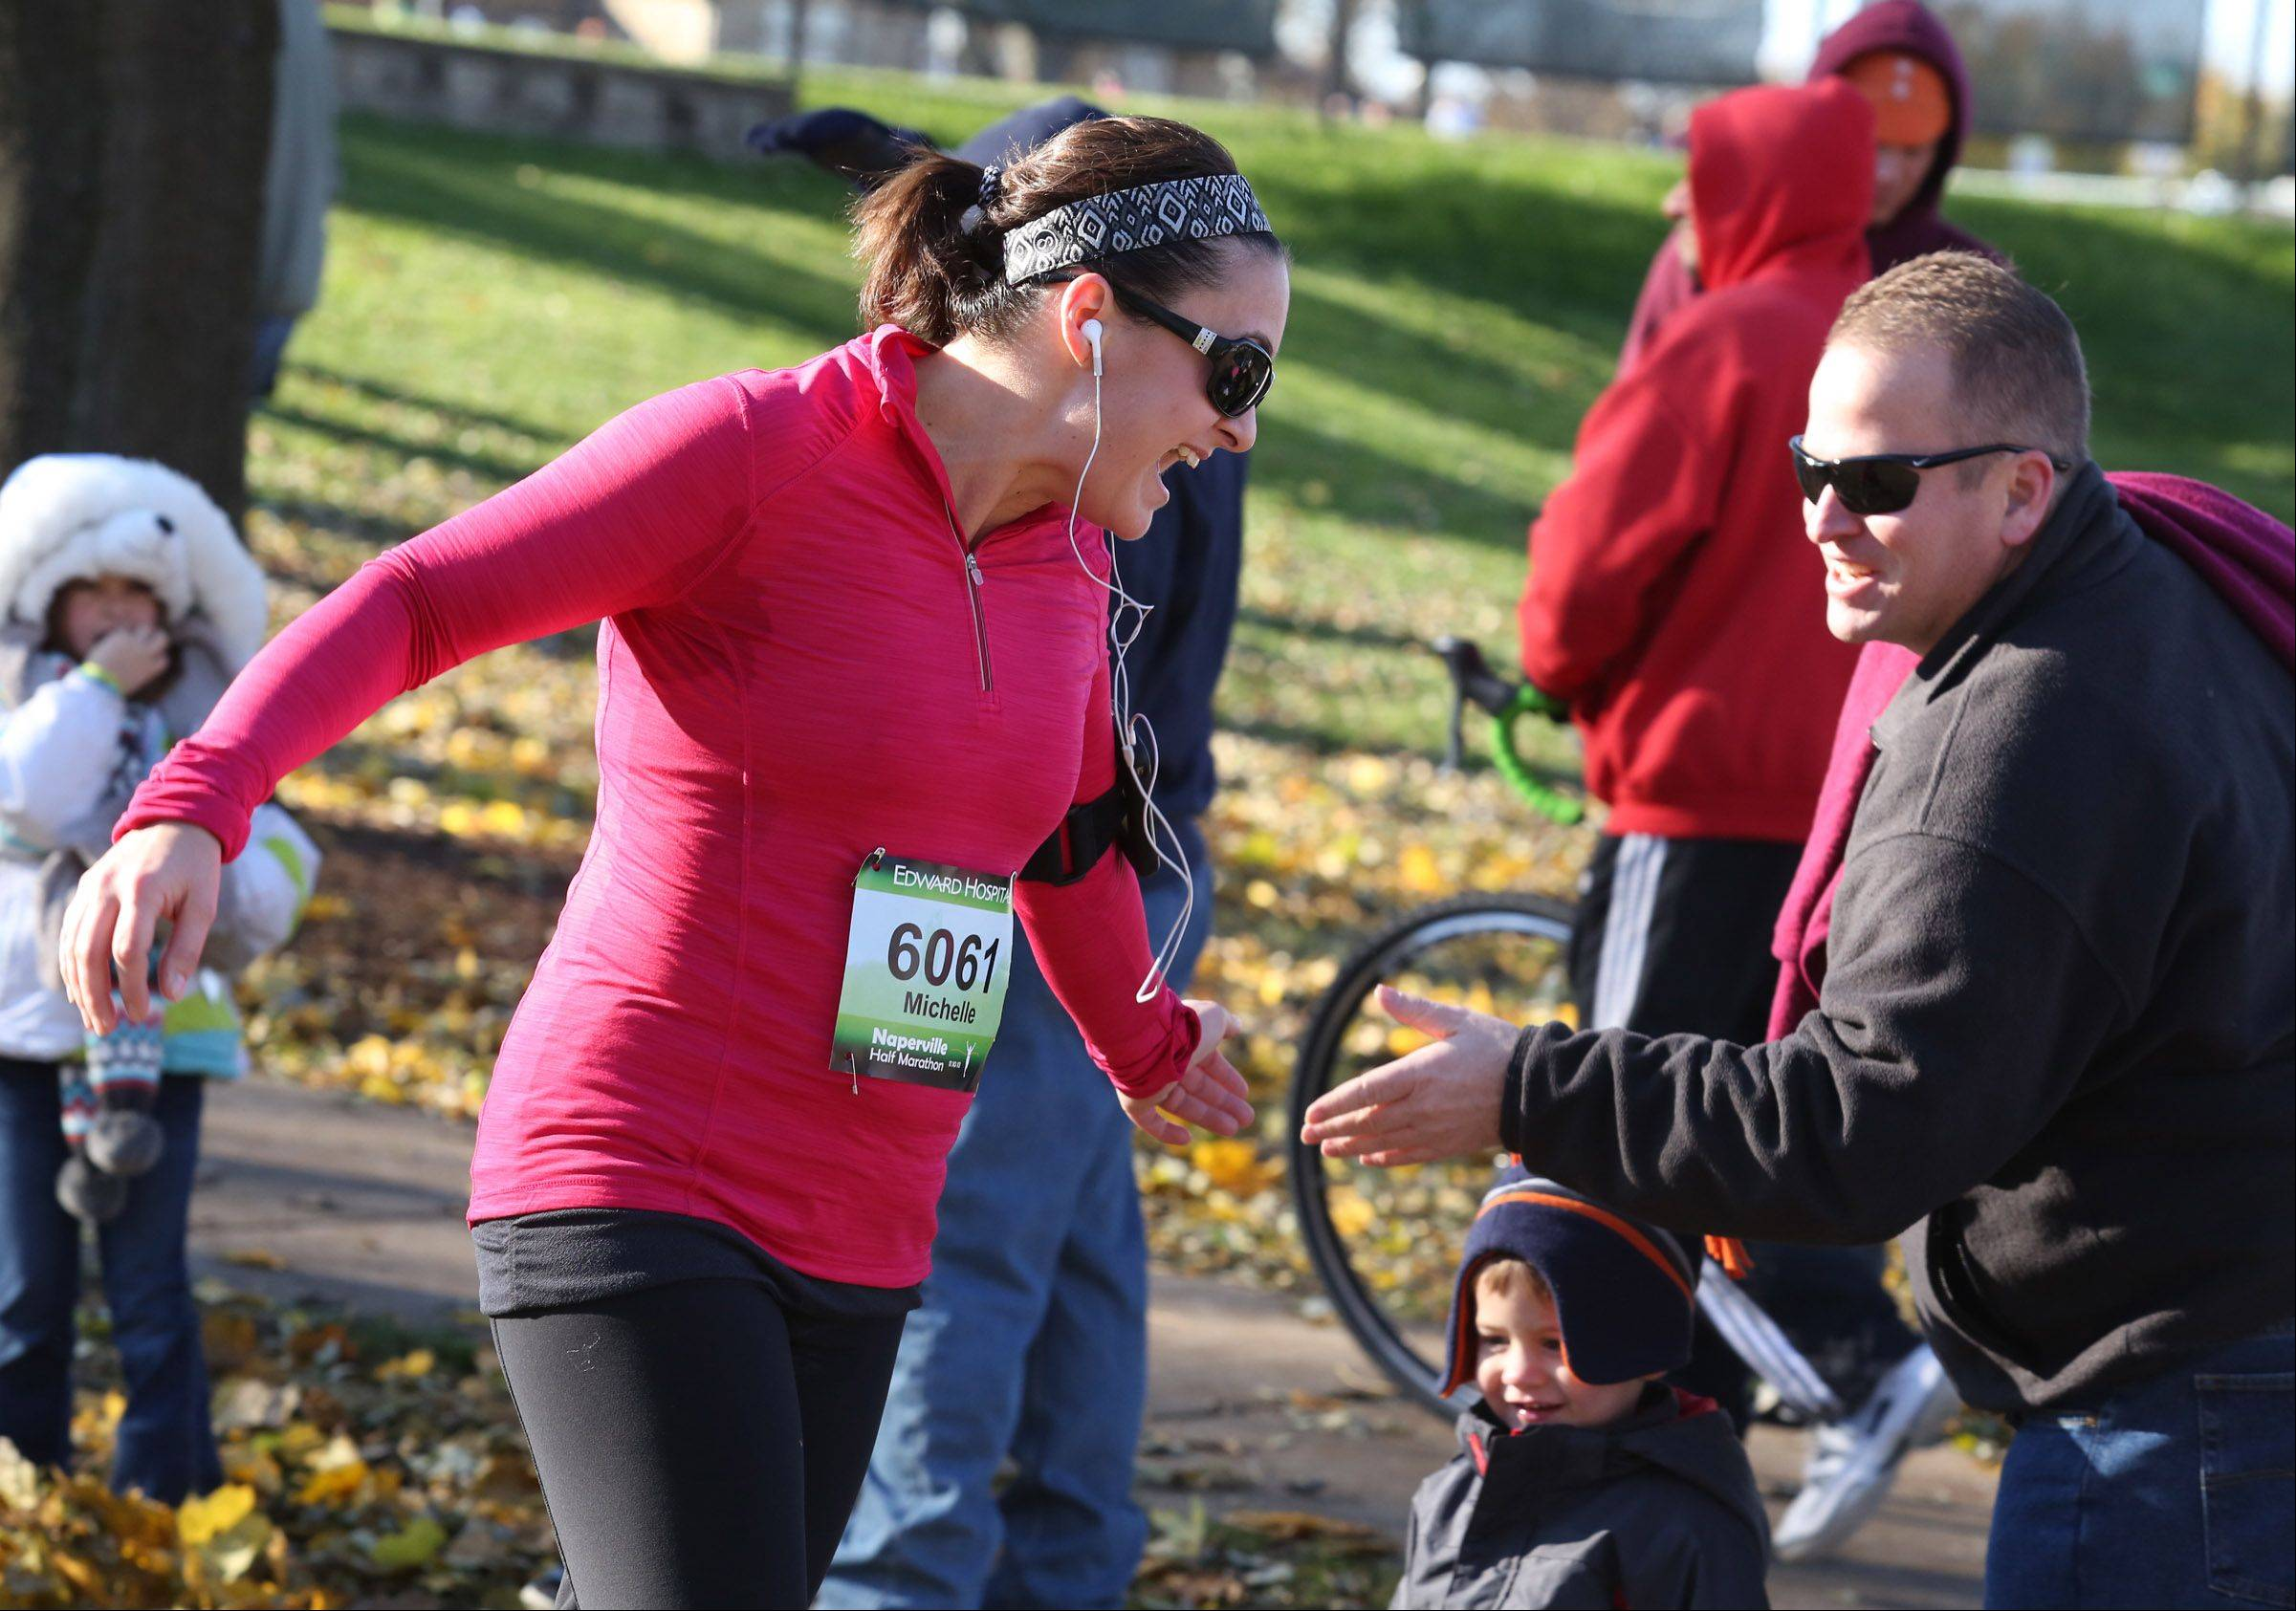 Organizers said the second Edward Hospital Naperville Marathon and Half Marathon will run through more neighborhoods in Naperville, providing more opportunities for spectators to get involved in encouraging runners. The race is scheduled for Sunday, Nov. 9.